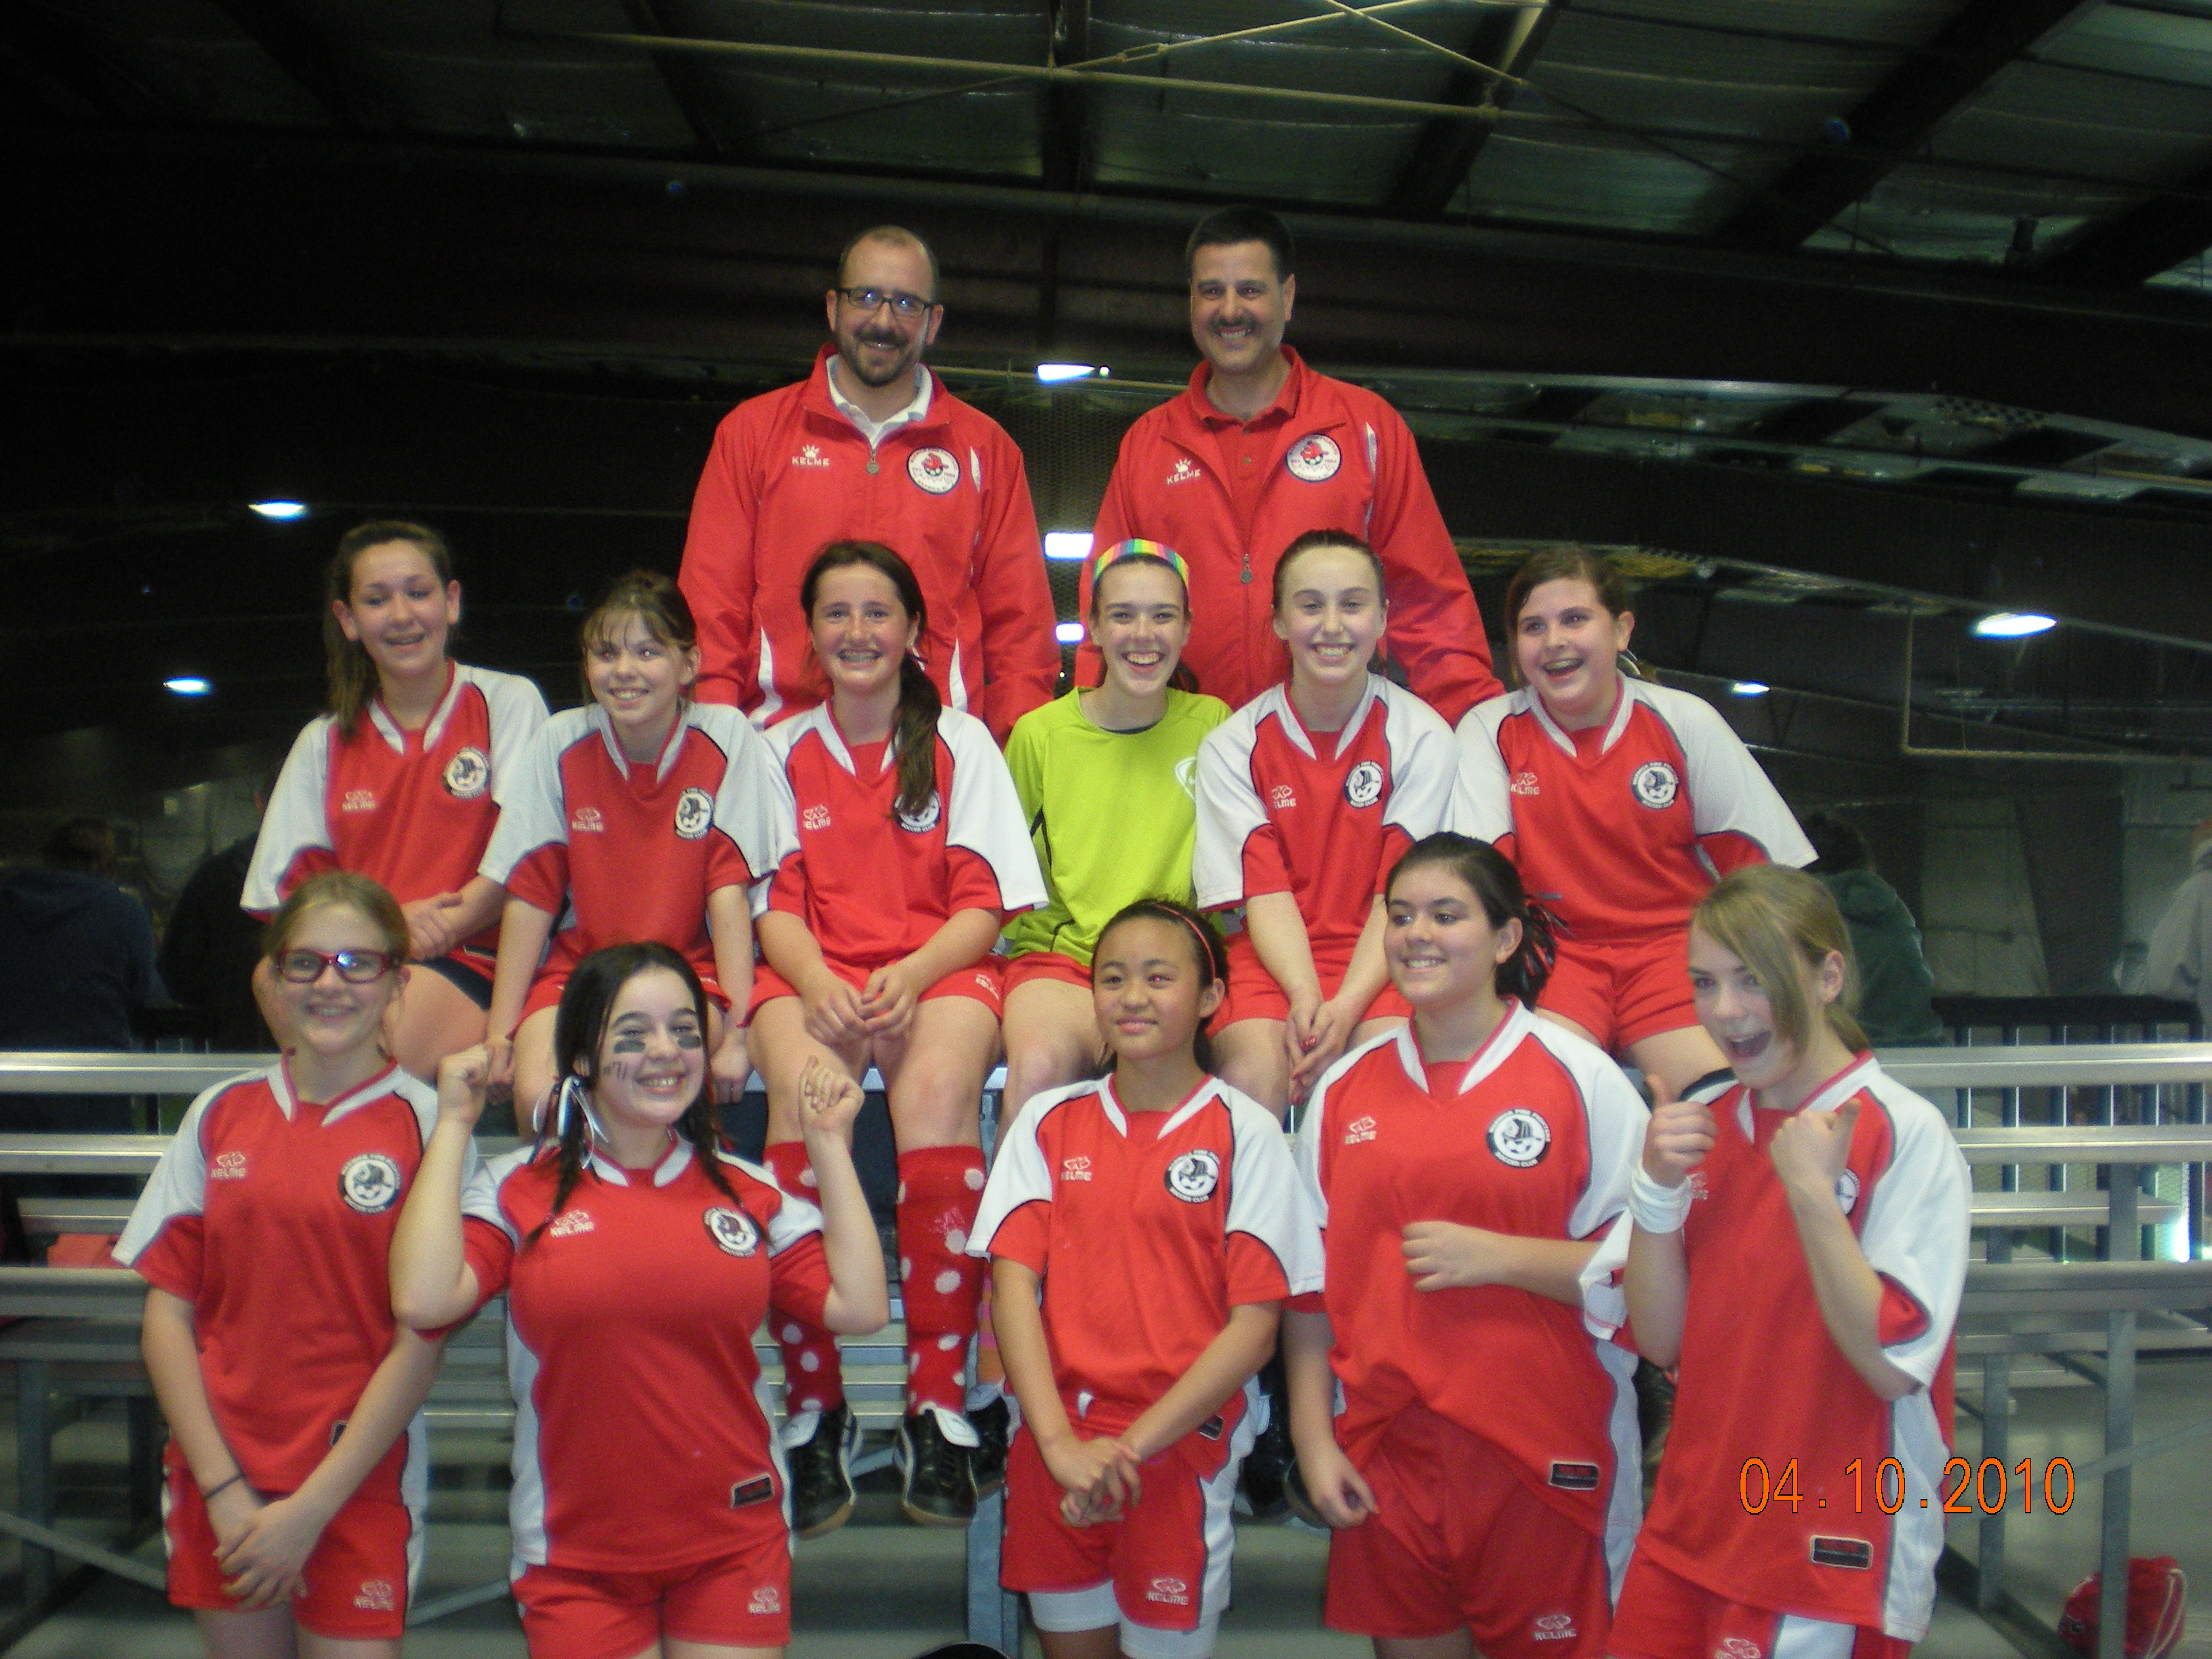 U14 Girls Session 2 Champs 2010